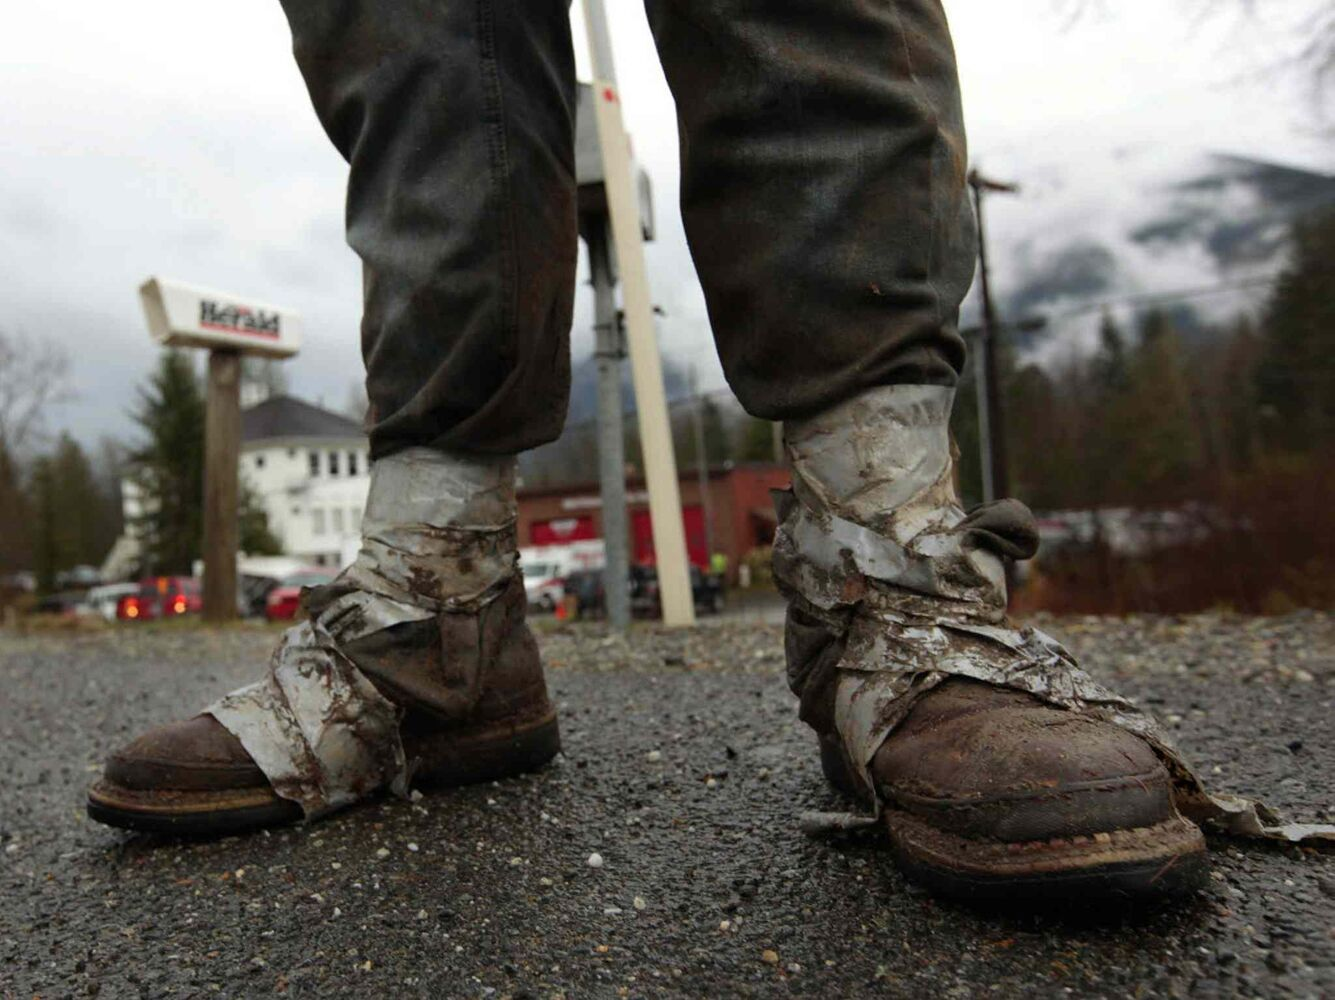 Sonny Blankenship, 18, a senior at Westin High School in Arlington, Wash., walks home from the Oso Fire Department after spending the day volunteering in the mudslide area in Oso, Wash. Blankenship, who lives across the street from the Oso Fire Department, took the day off from school to sort through debris in the slide area just miles from his home.  (Mark Mulligan / The Associated Press / The Herald)